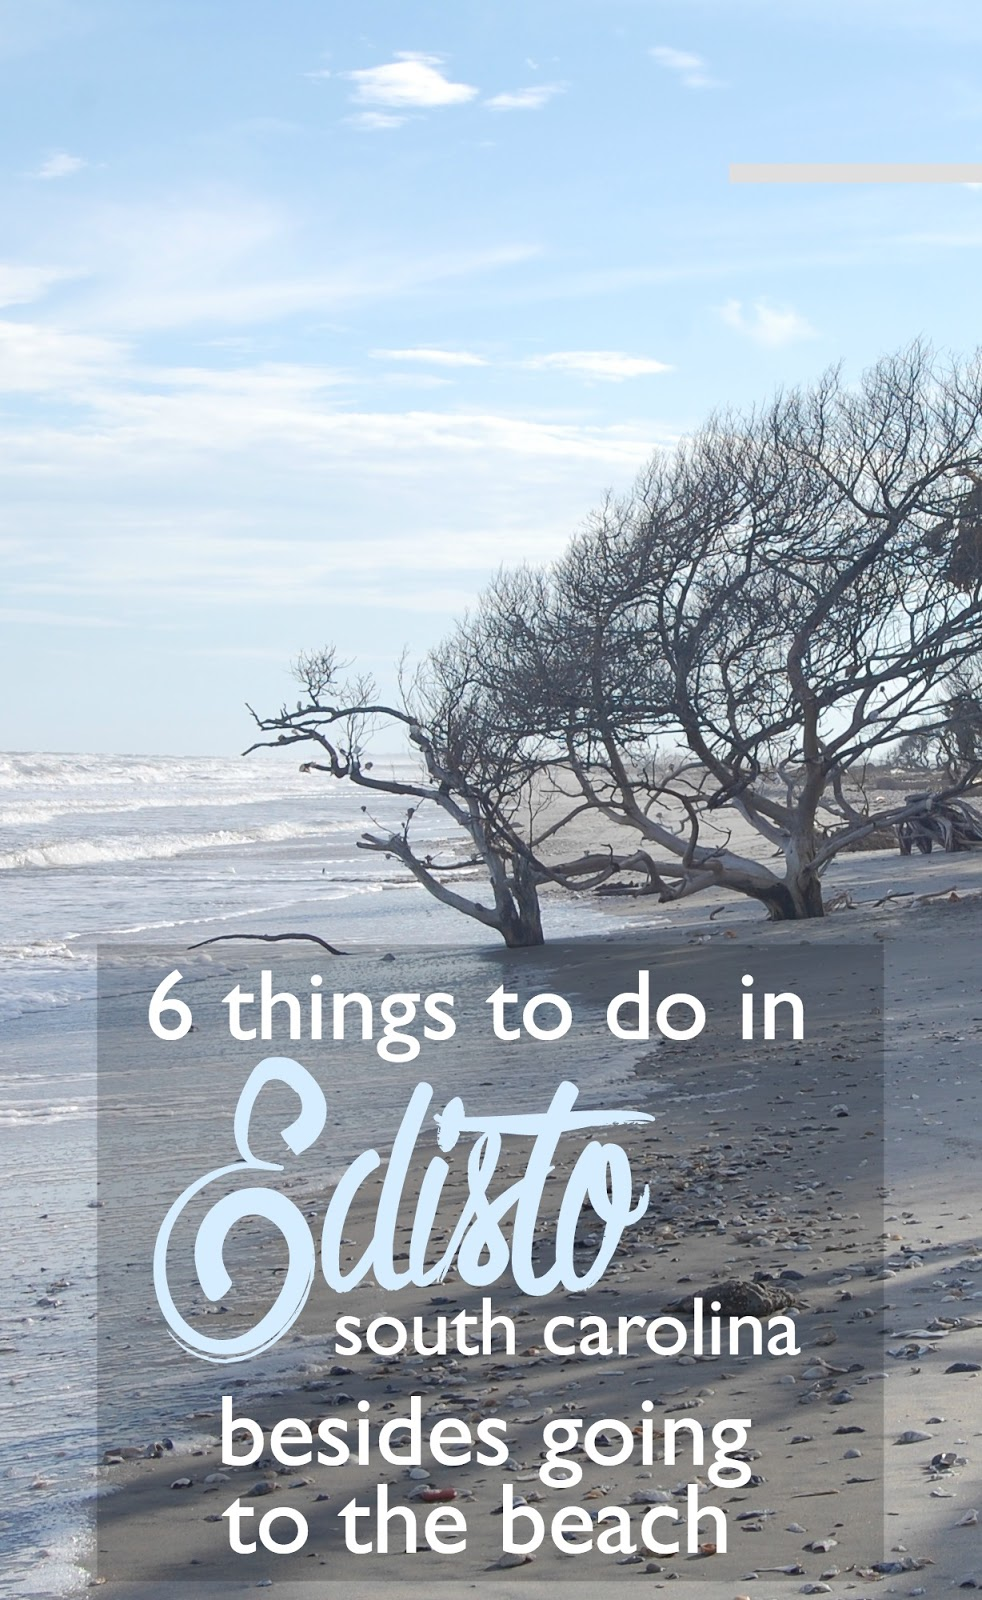 things to do in edisto island south carolina besides going to the